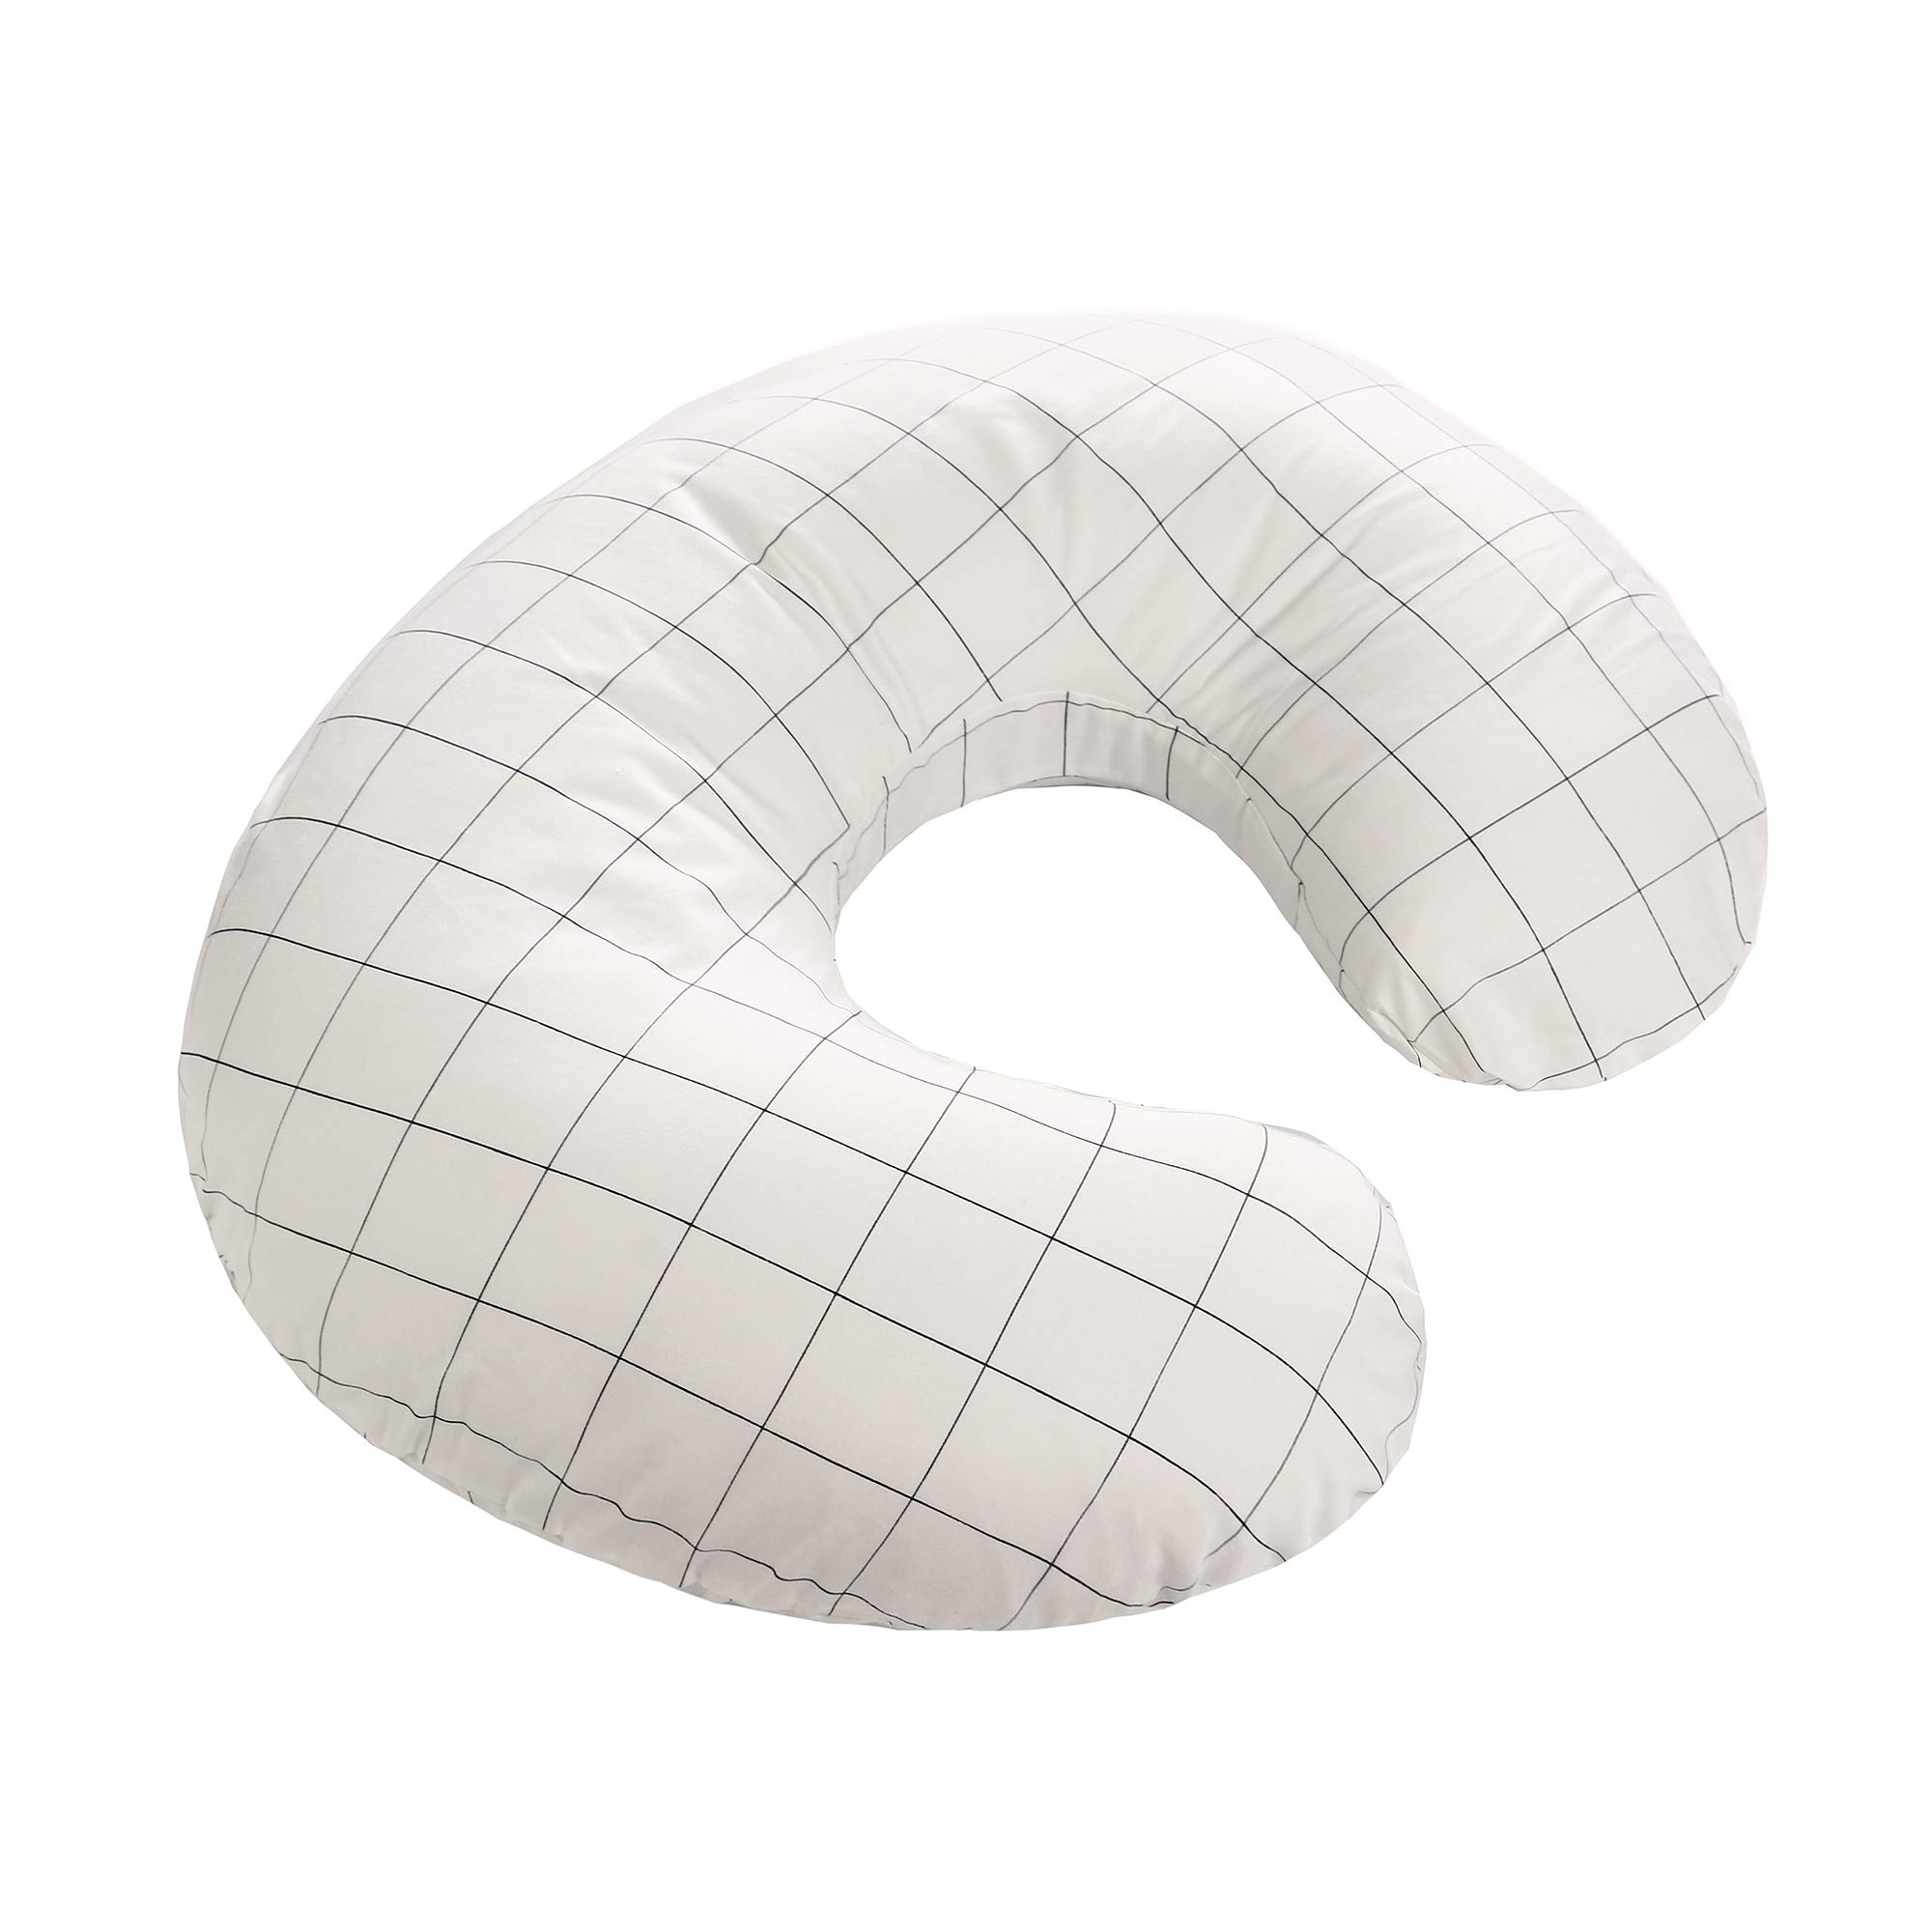 Nursing Pillow and Positioner, Best for Breastfeeding Moms and Bottle Feeding Baby, Soft Cotton Fabric Slipcover (White Grid)